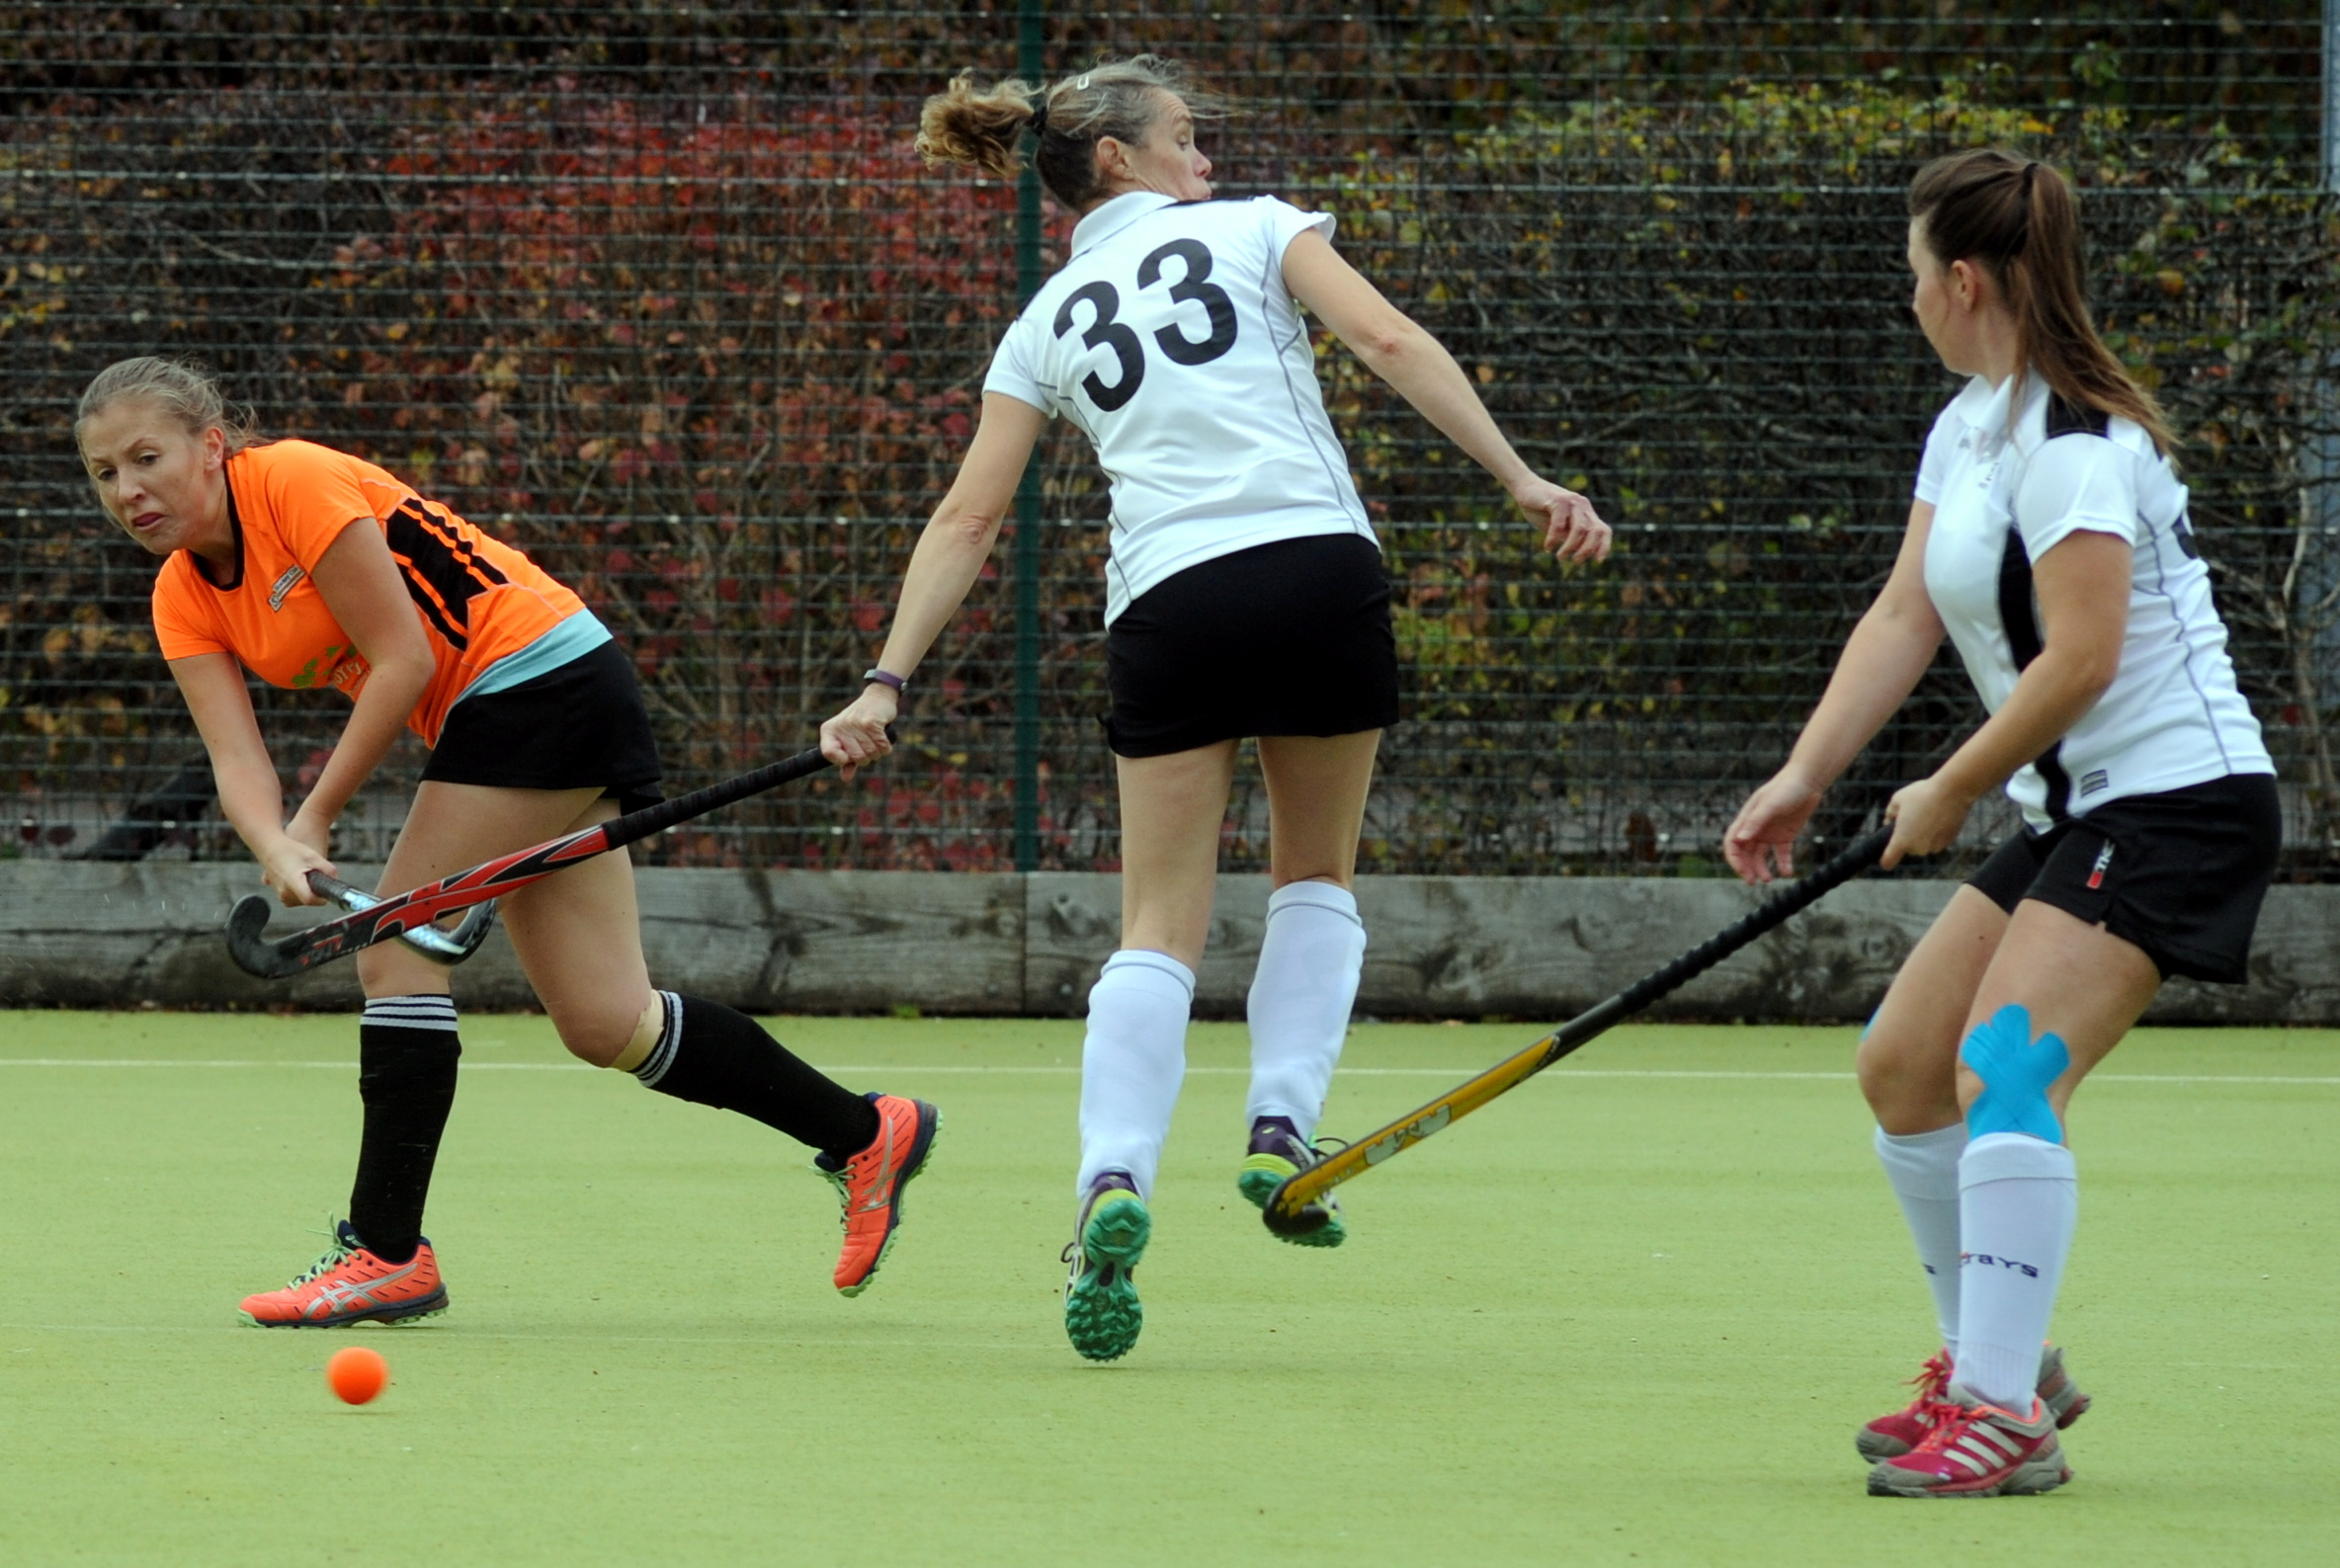 Swindon 2nd's Jenny Cooper (orange) drills the ball forward against Salisbury   Picture: PAUL NICHOLLS